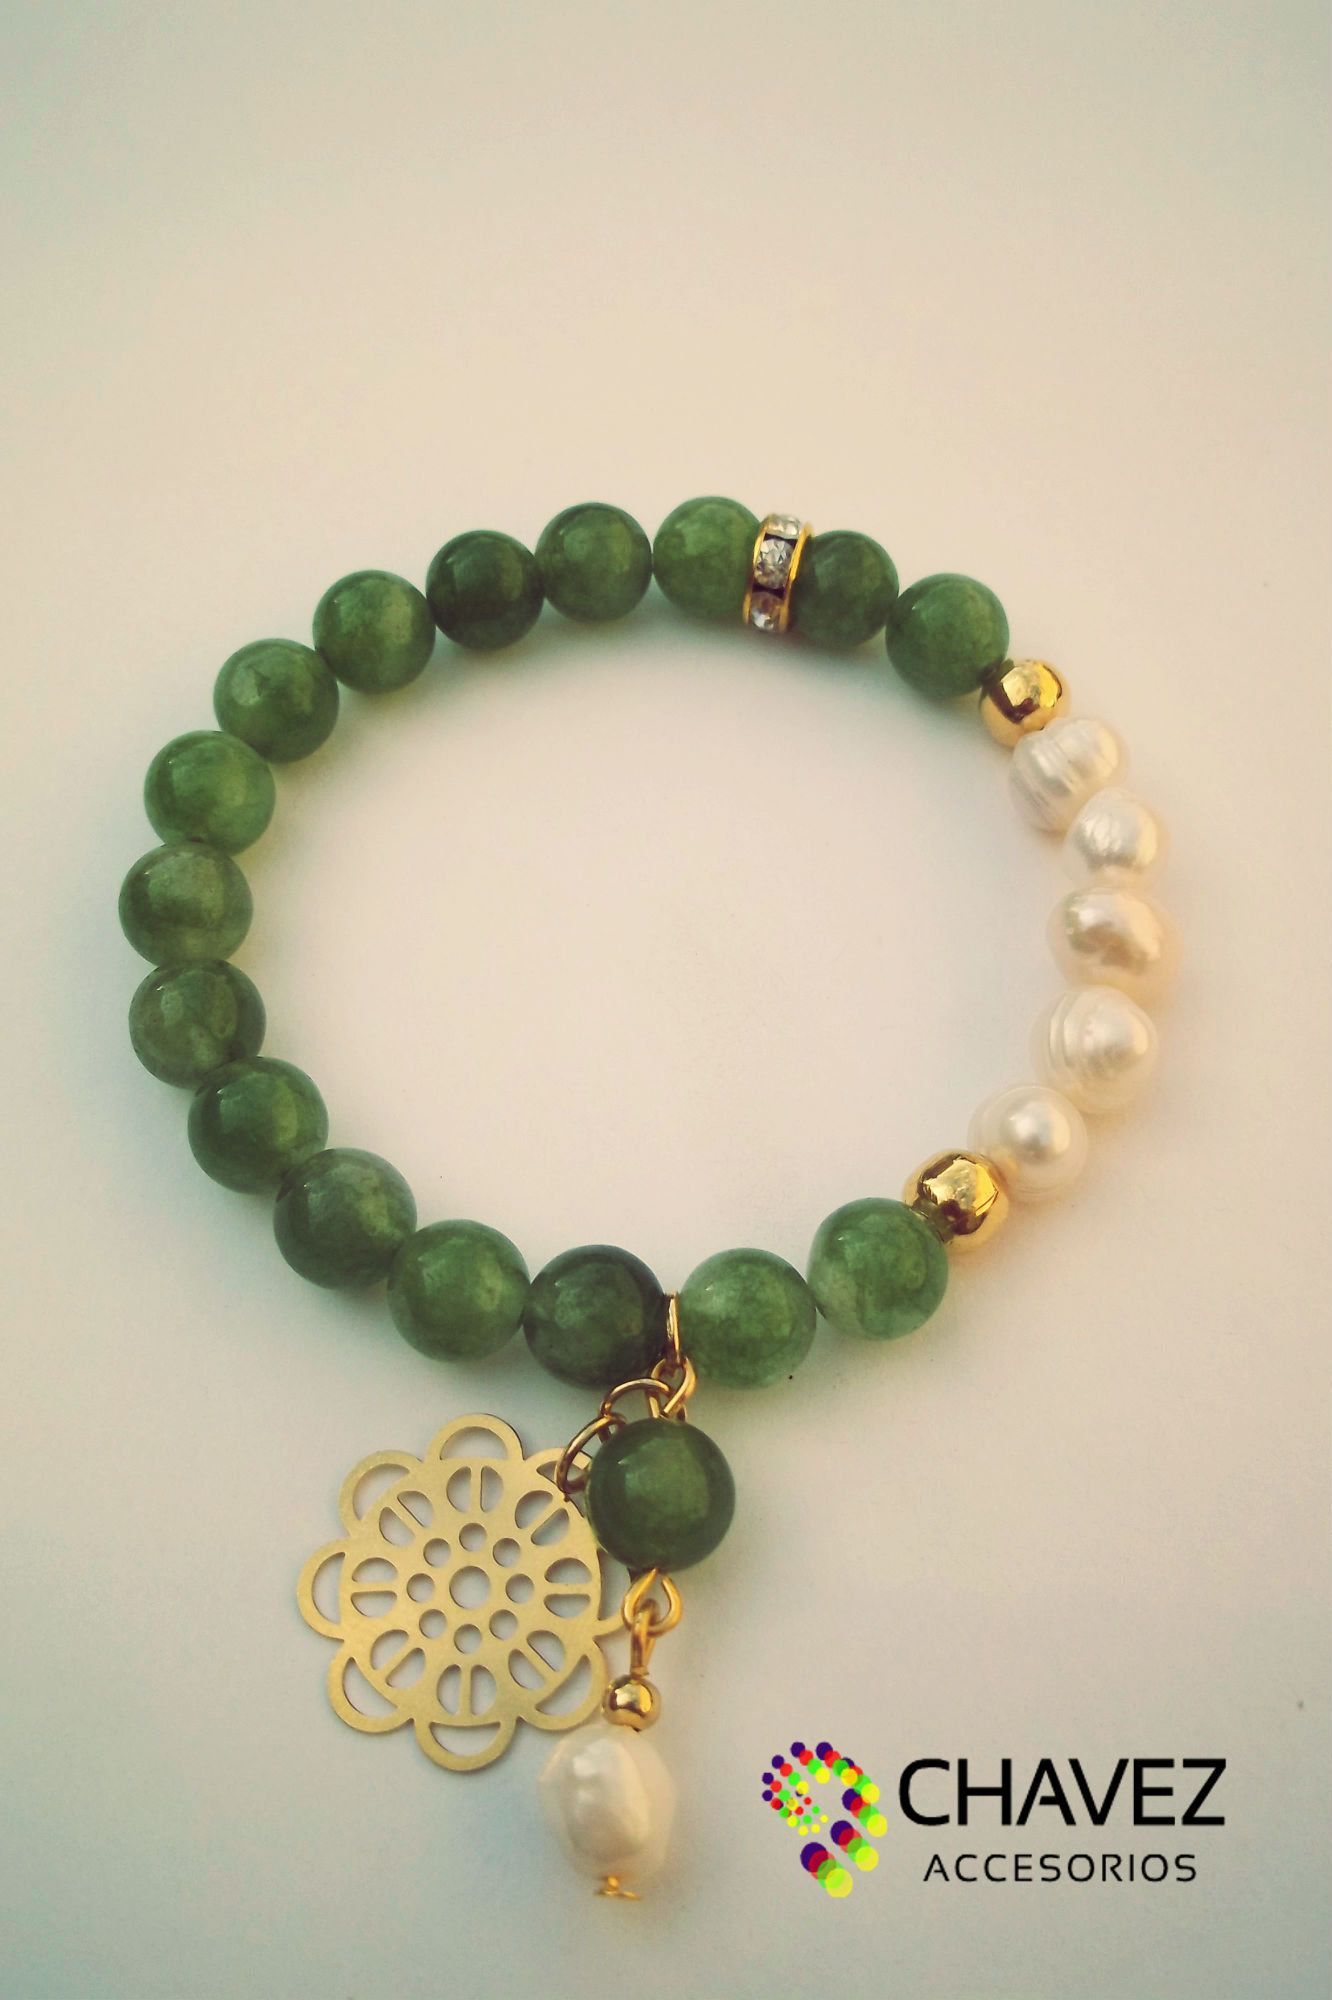 bracelet jewellery product jewelry find jade genuine vintage filled gold retro estate